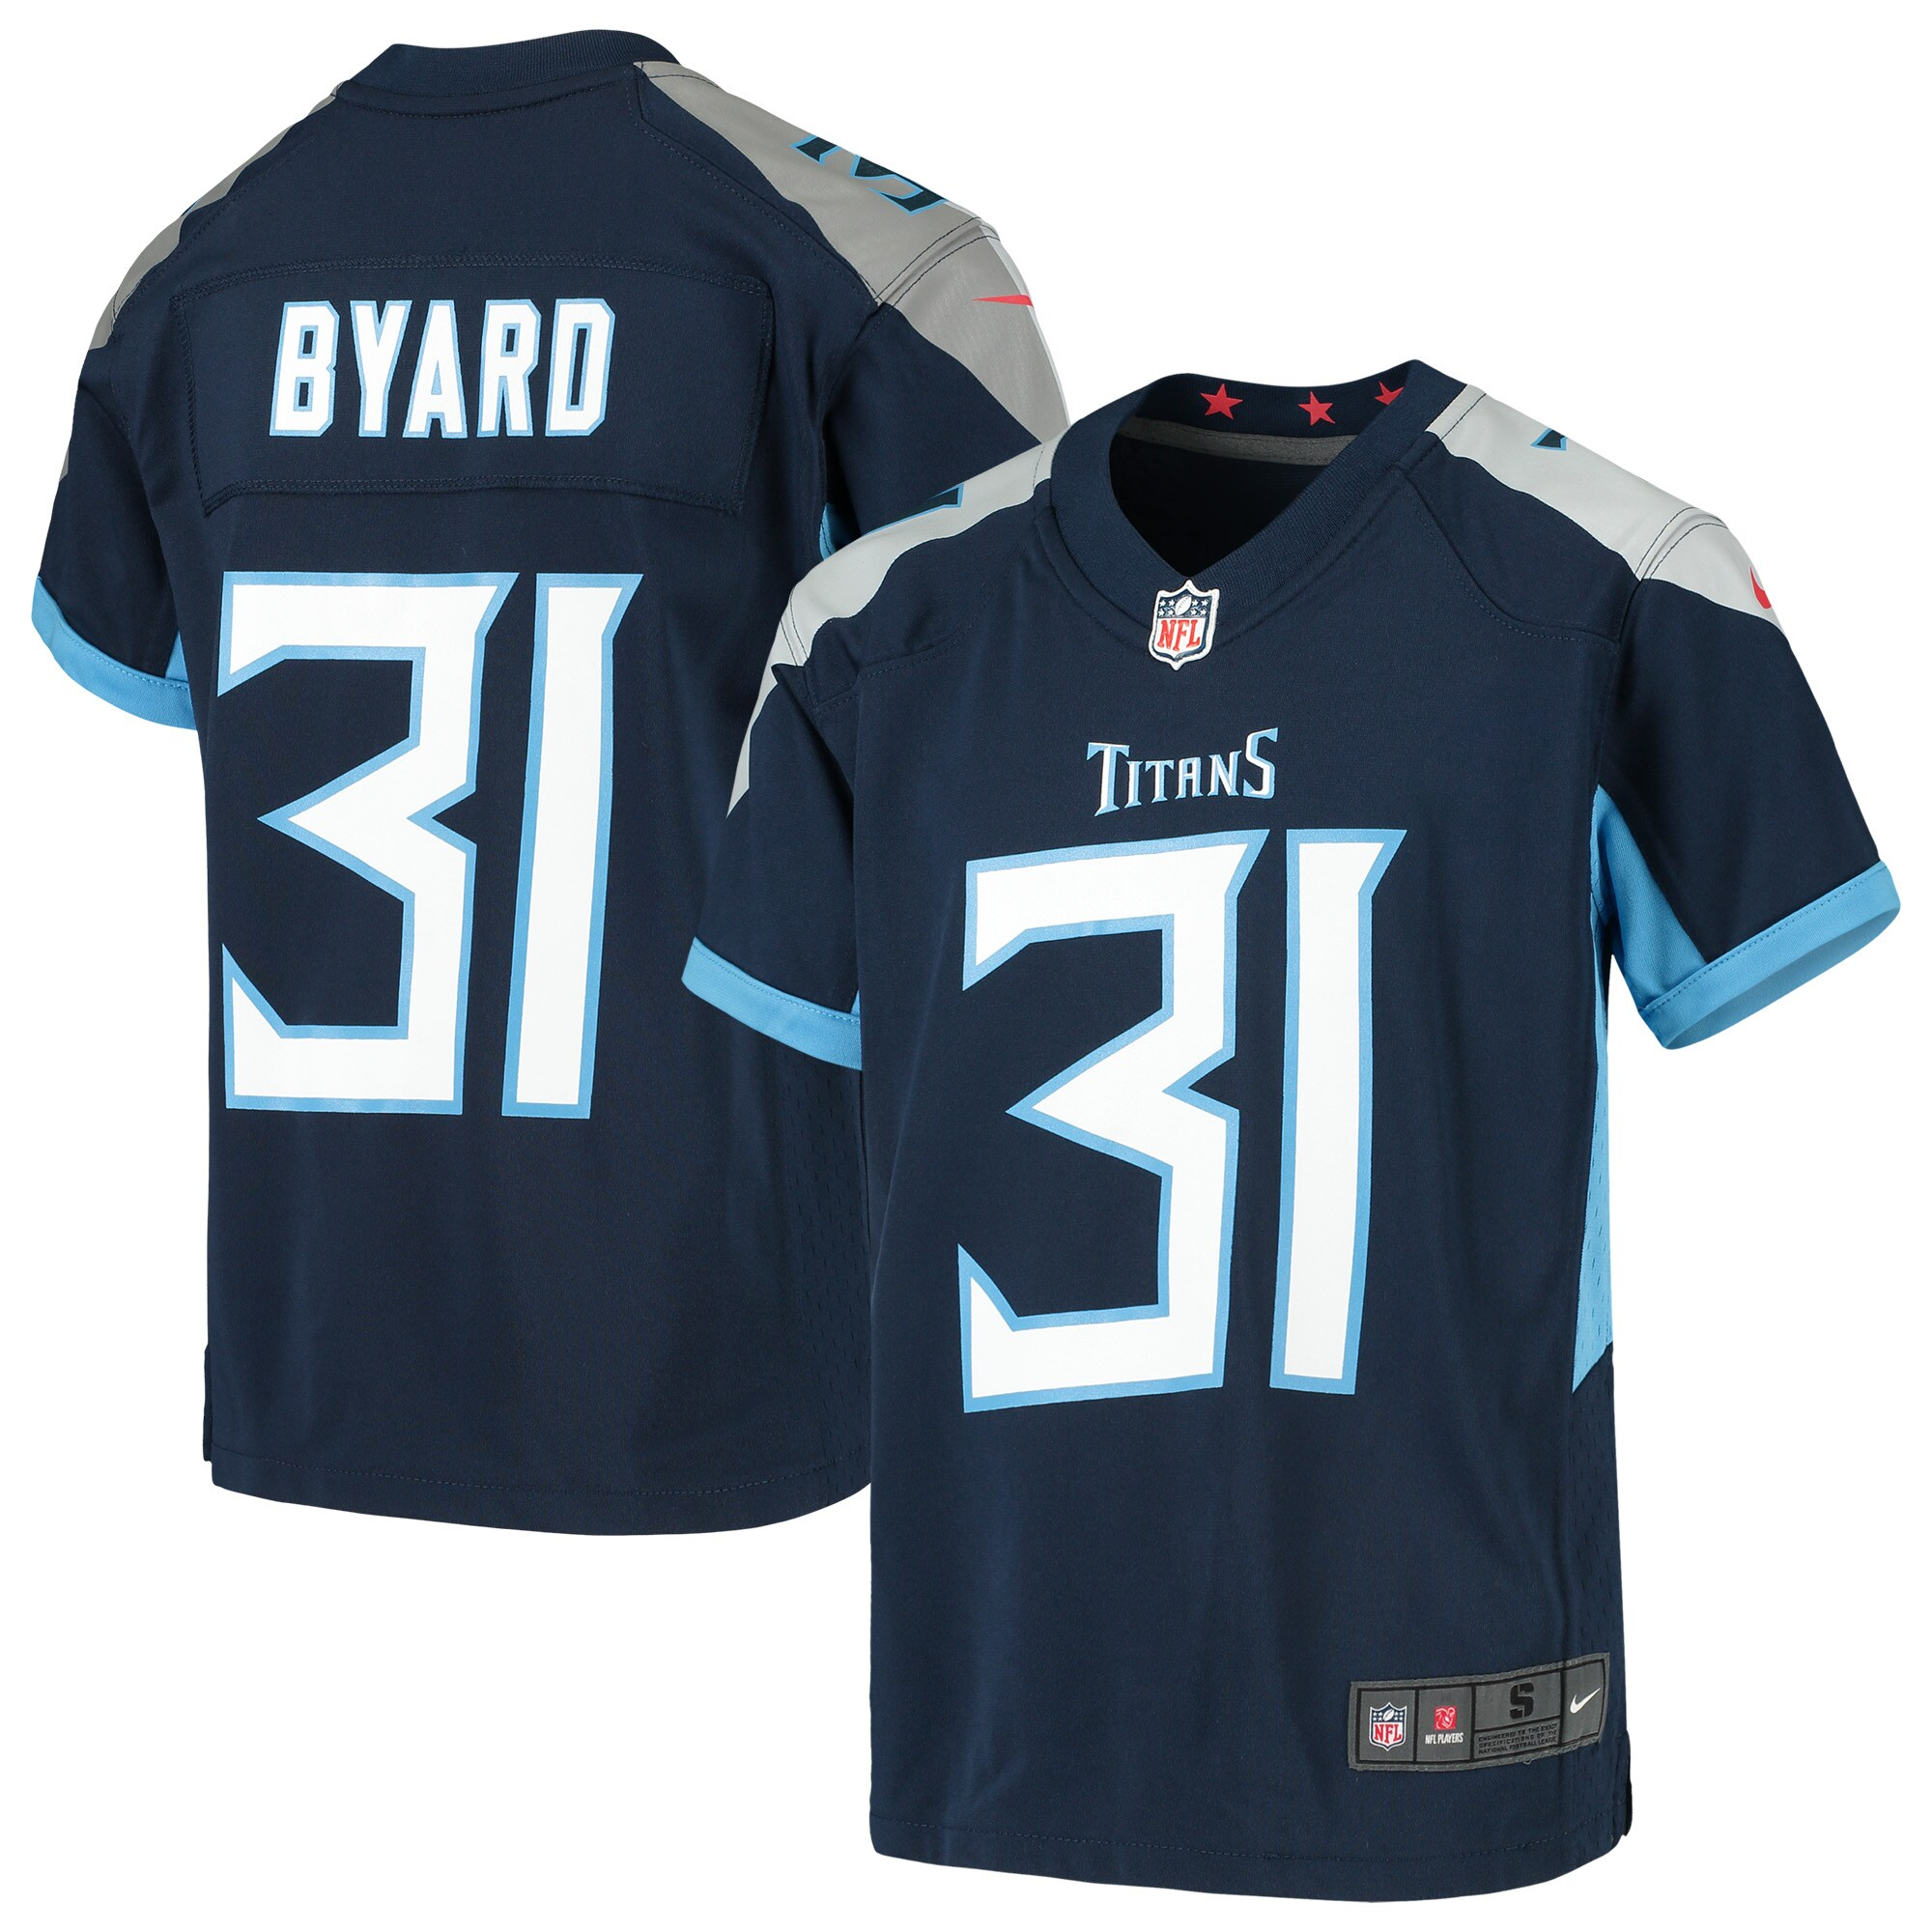 Kevin Byard Tennessee Titans Nike Youth Game Jersey - Navy